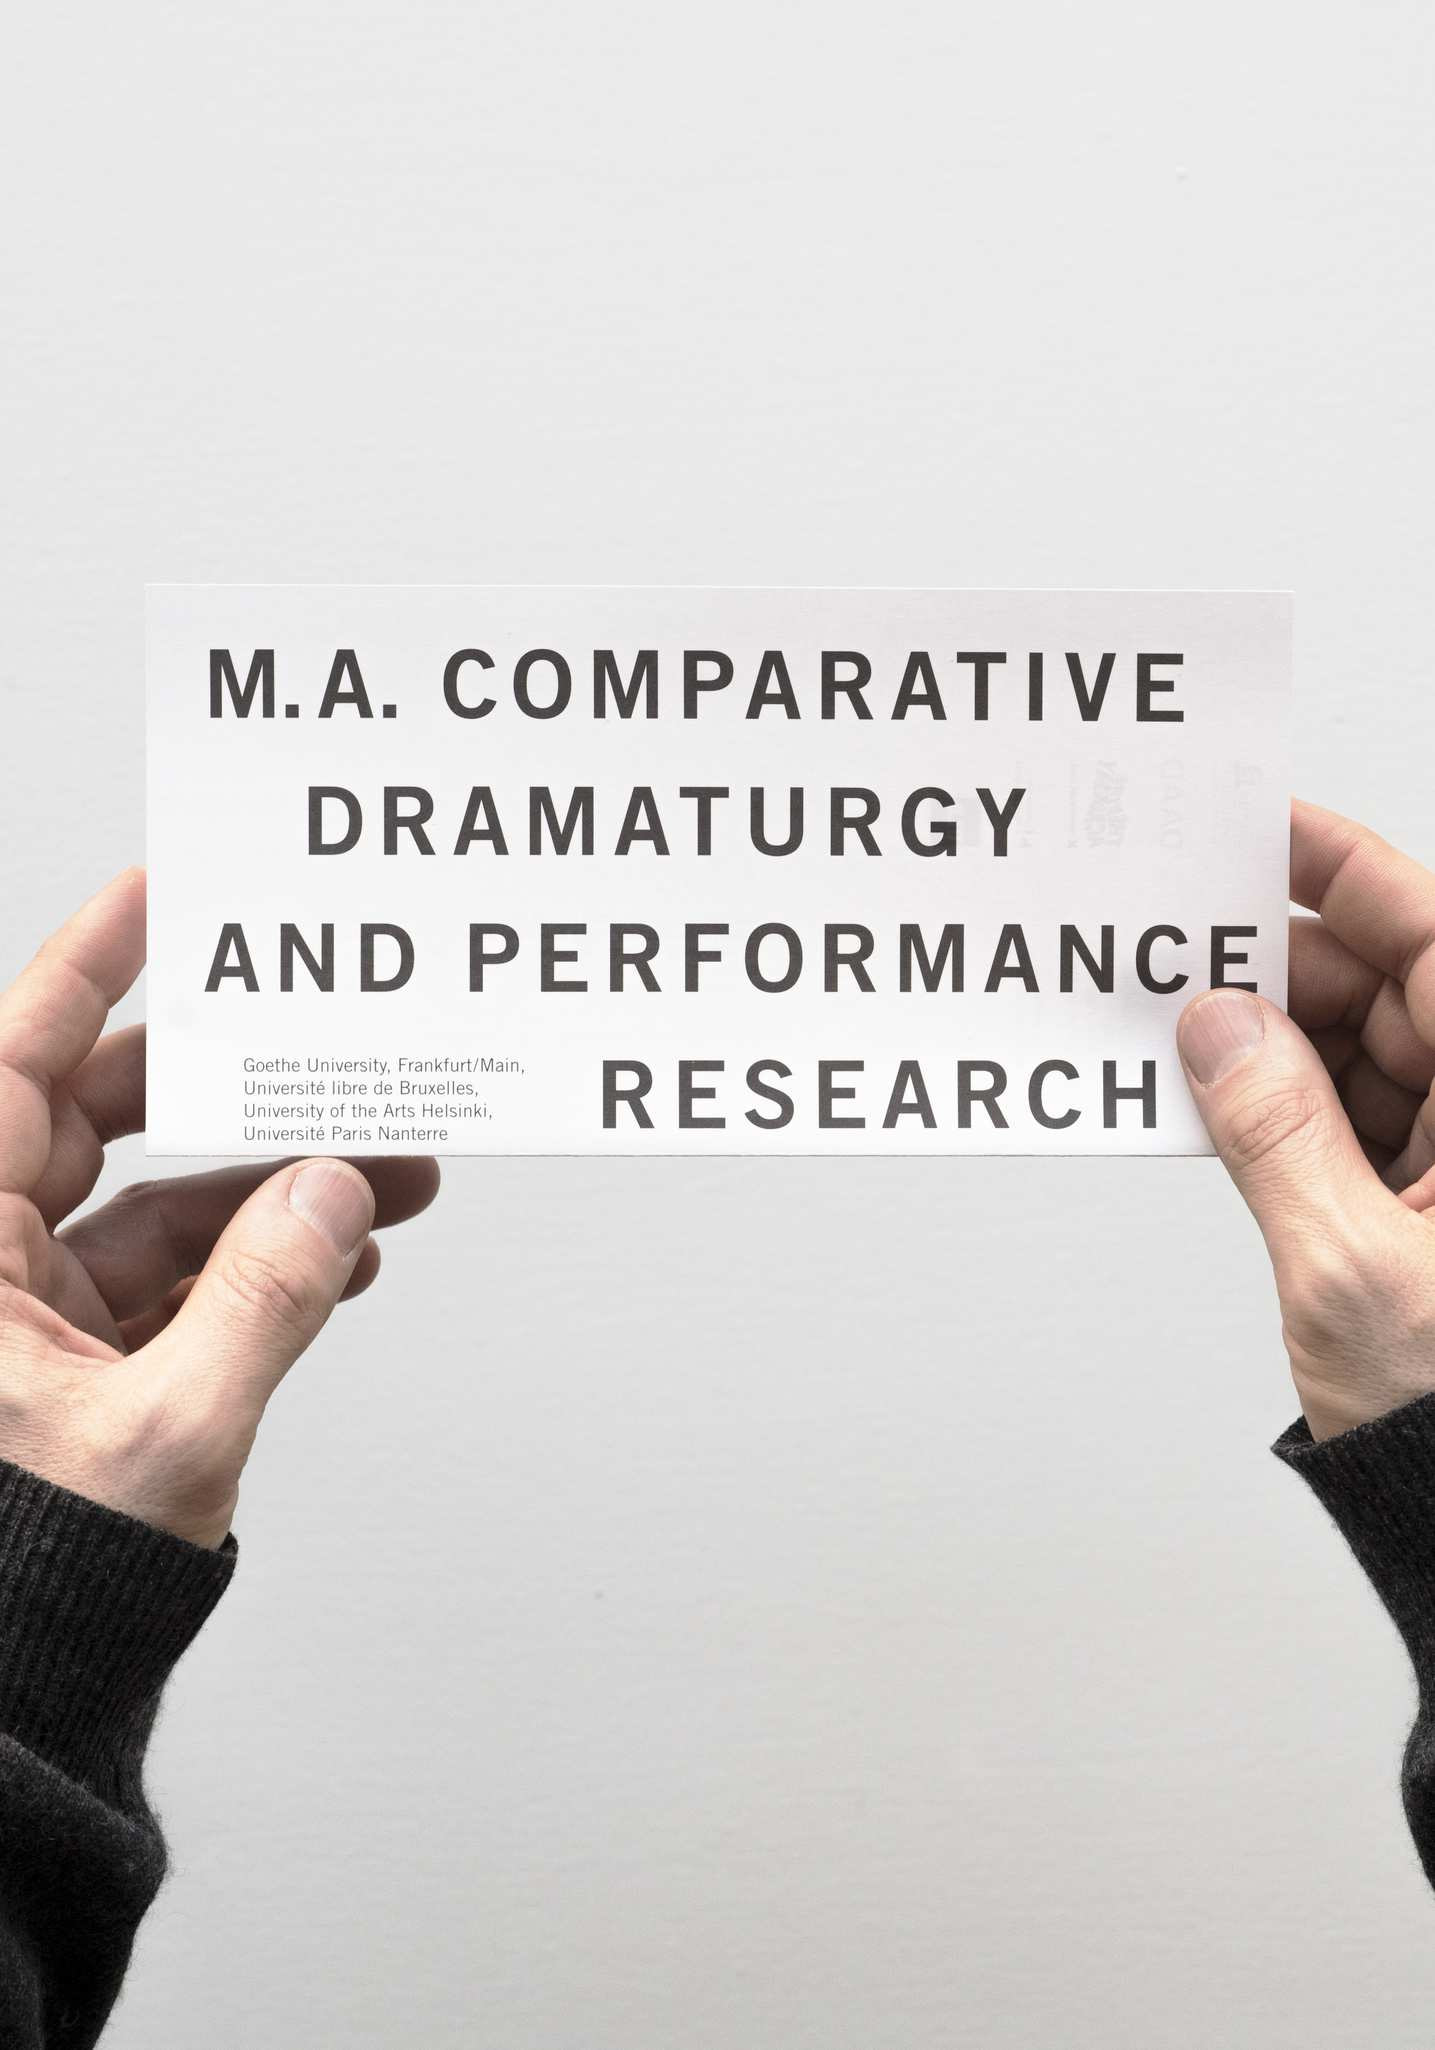 ma-comparative-dramaturgy-and-performance-research-flyer-1-1435x2050px